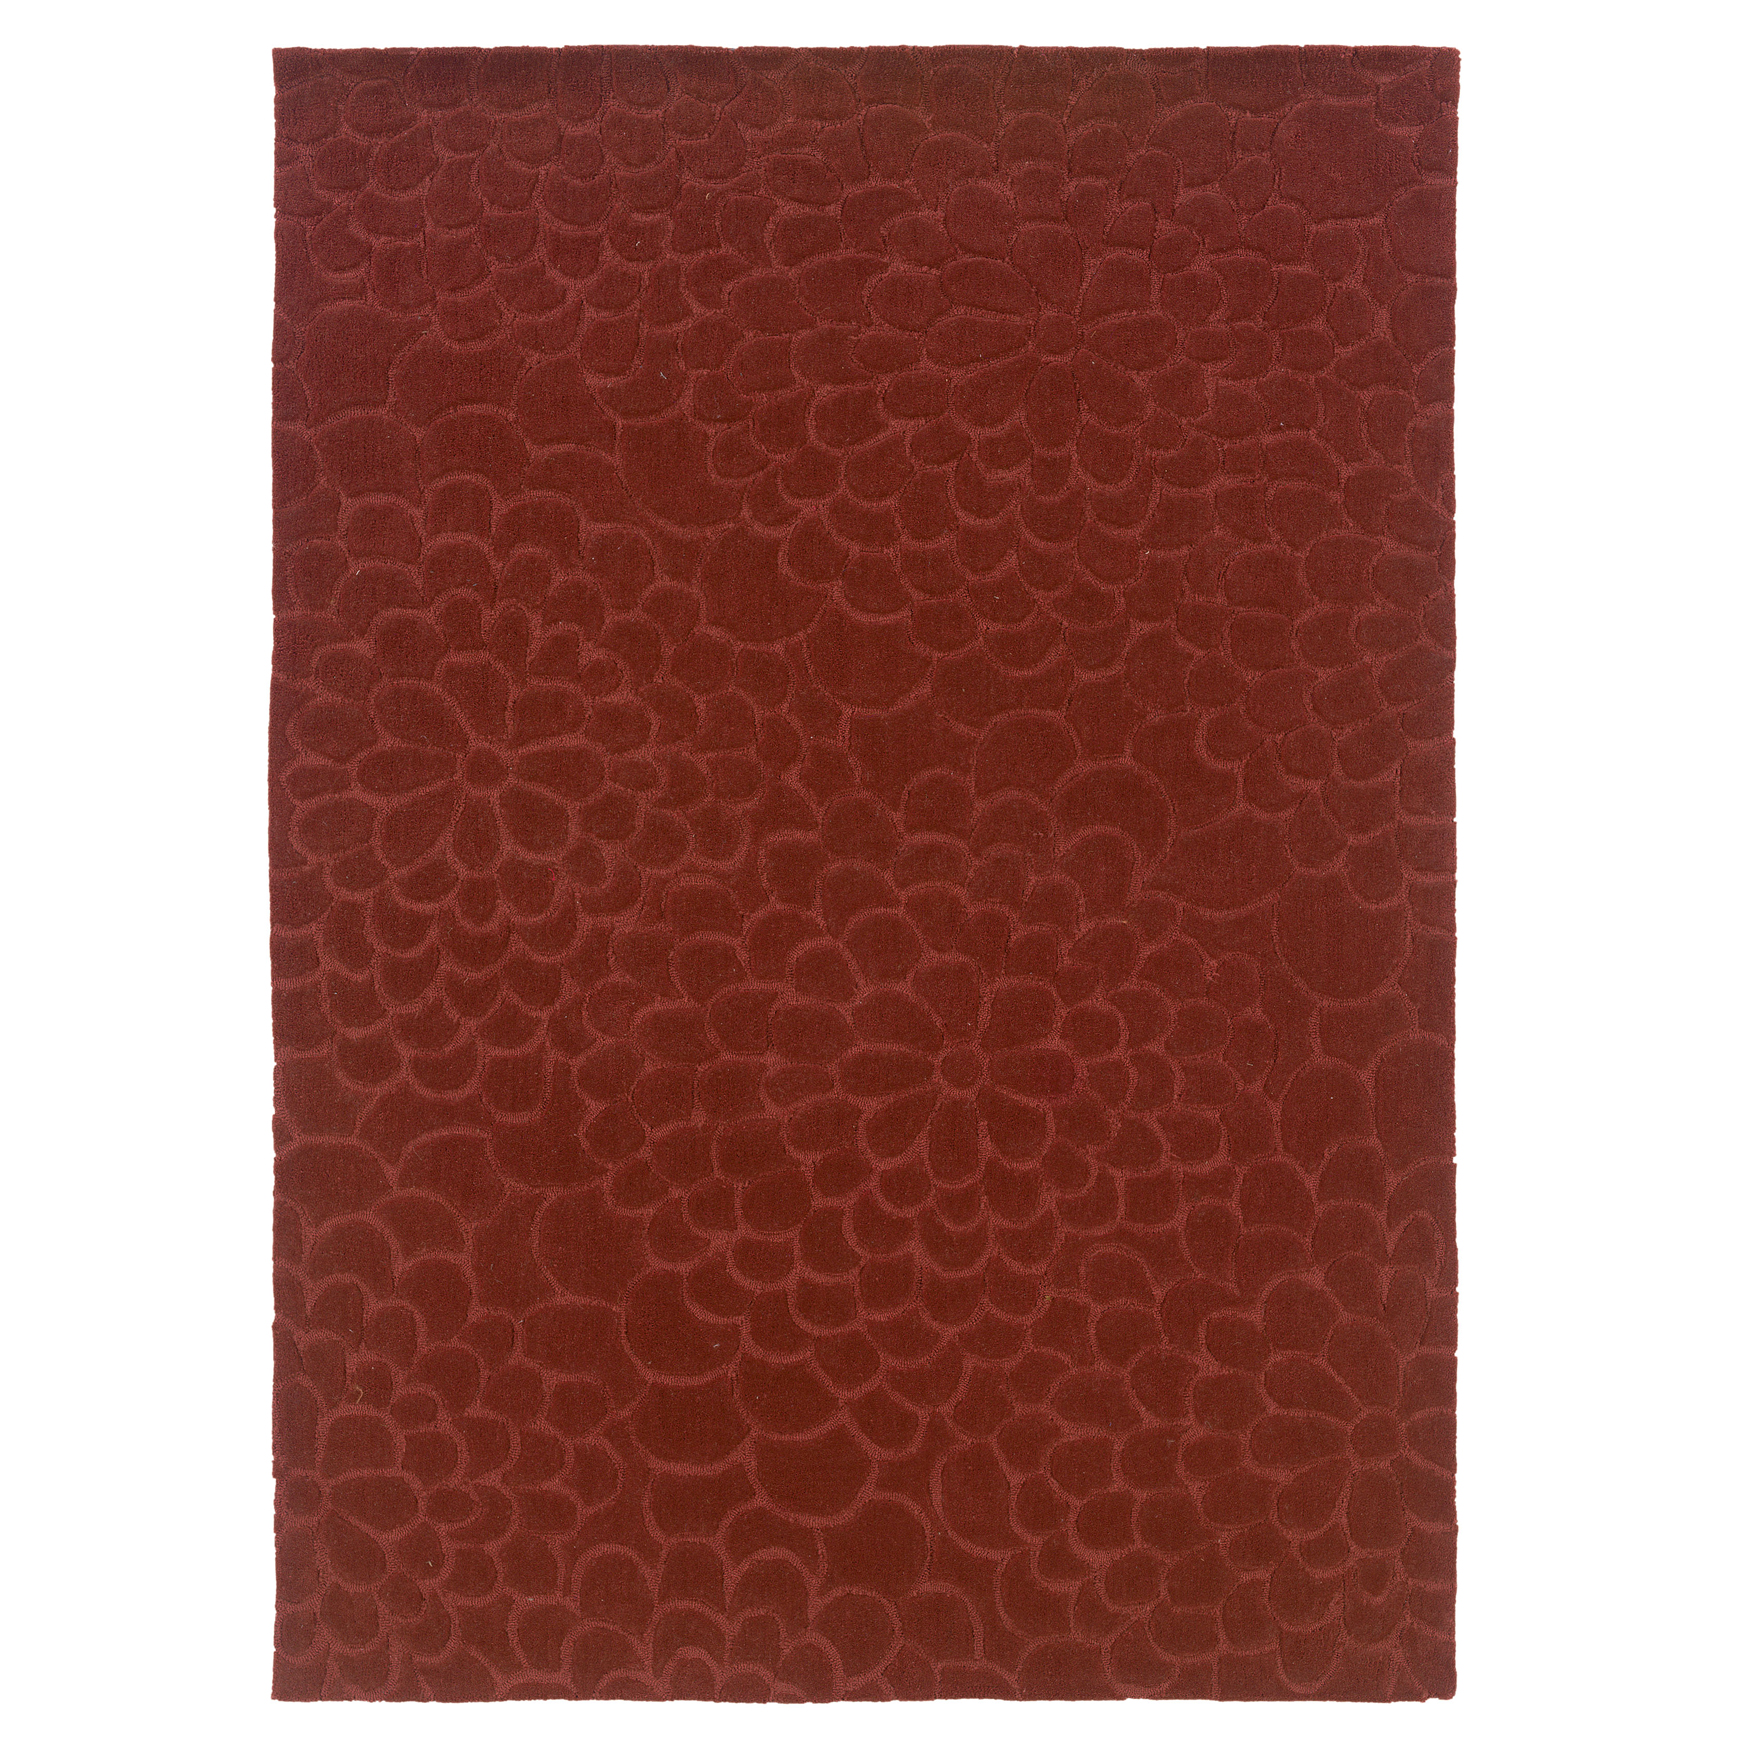 Trio 8'X10' Area Rug, RUST